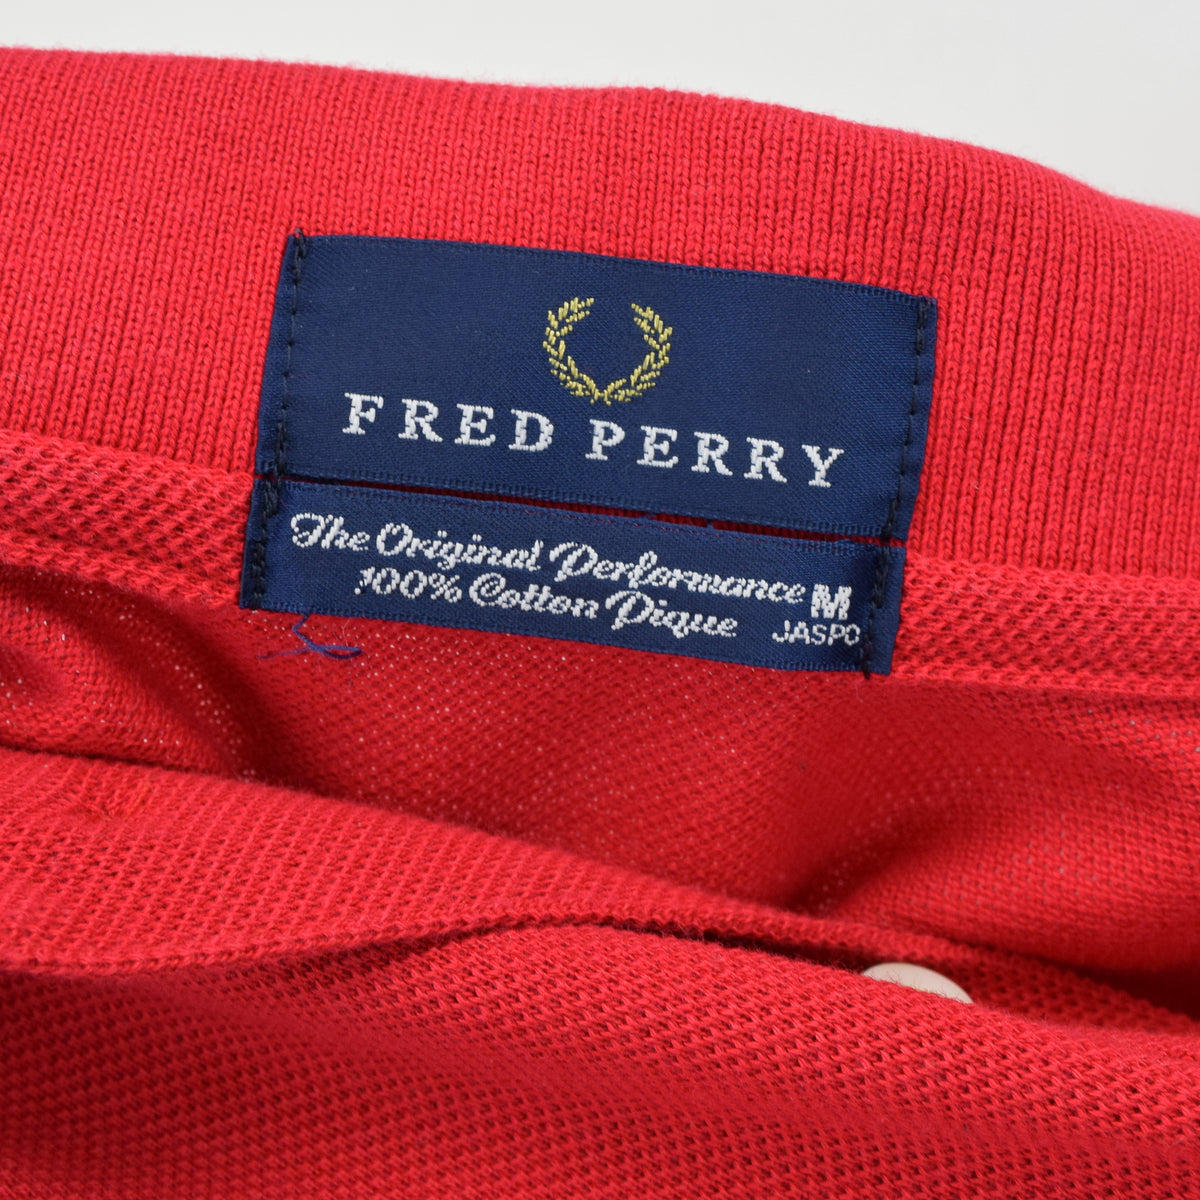 Rare Fred Perry Dark Pink Jaspo Short Sleeved Cotton Pique Polo Shirt M label